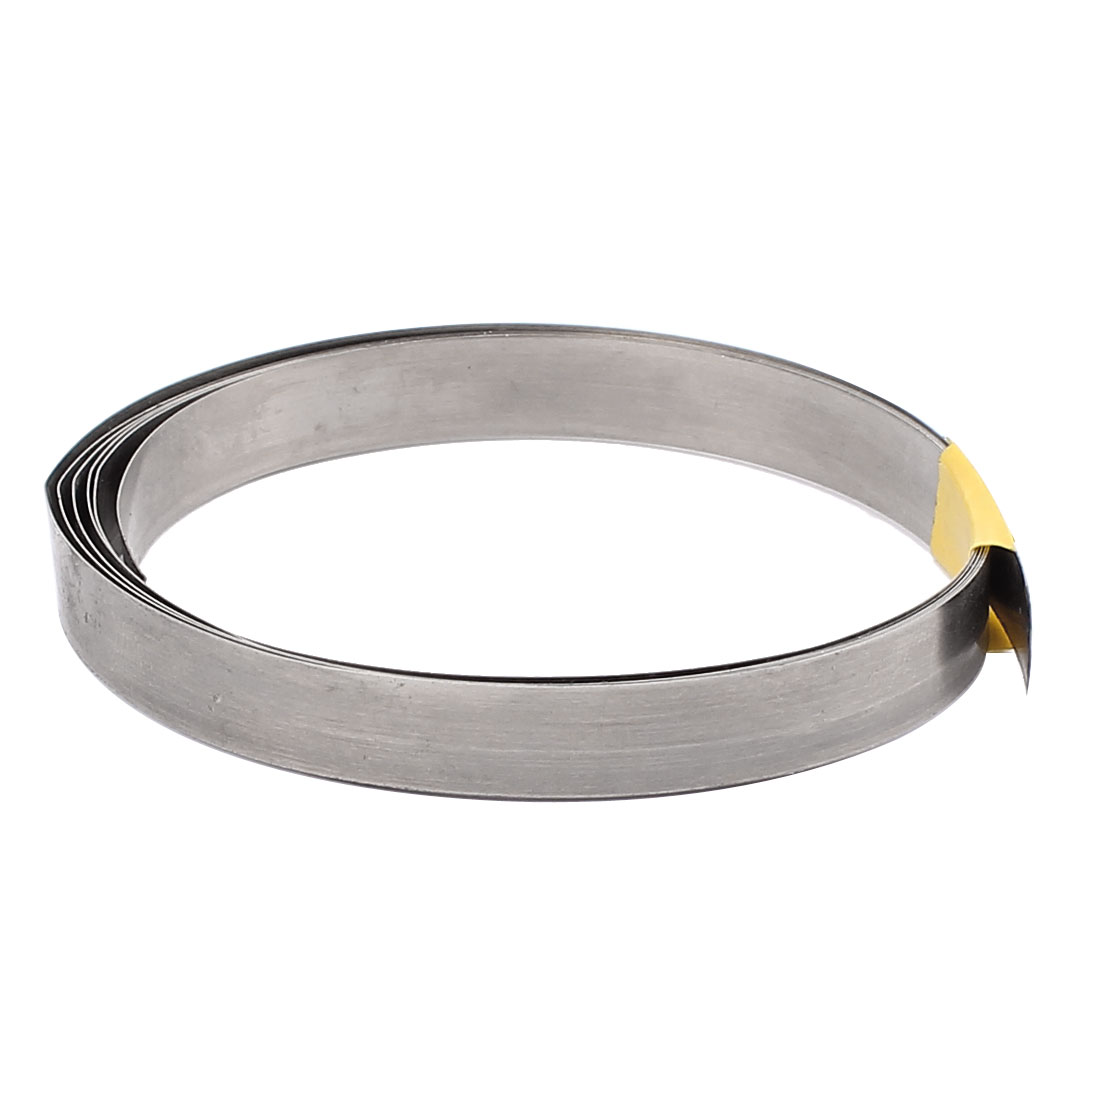 Uxcell 1M 2M Length 0.15mm 0.2mm Thick 0.15x8mm Nichrome Flat Heater Wire For Heating Elements Width 3mm 4mm 6mm 8mm 10mm 12mm